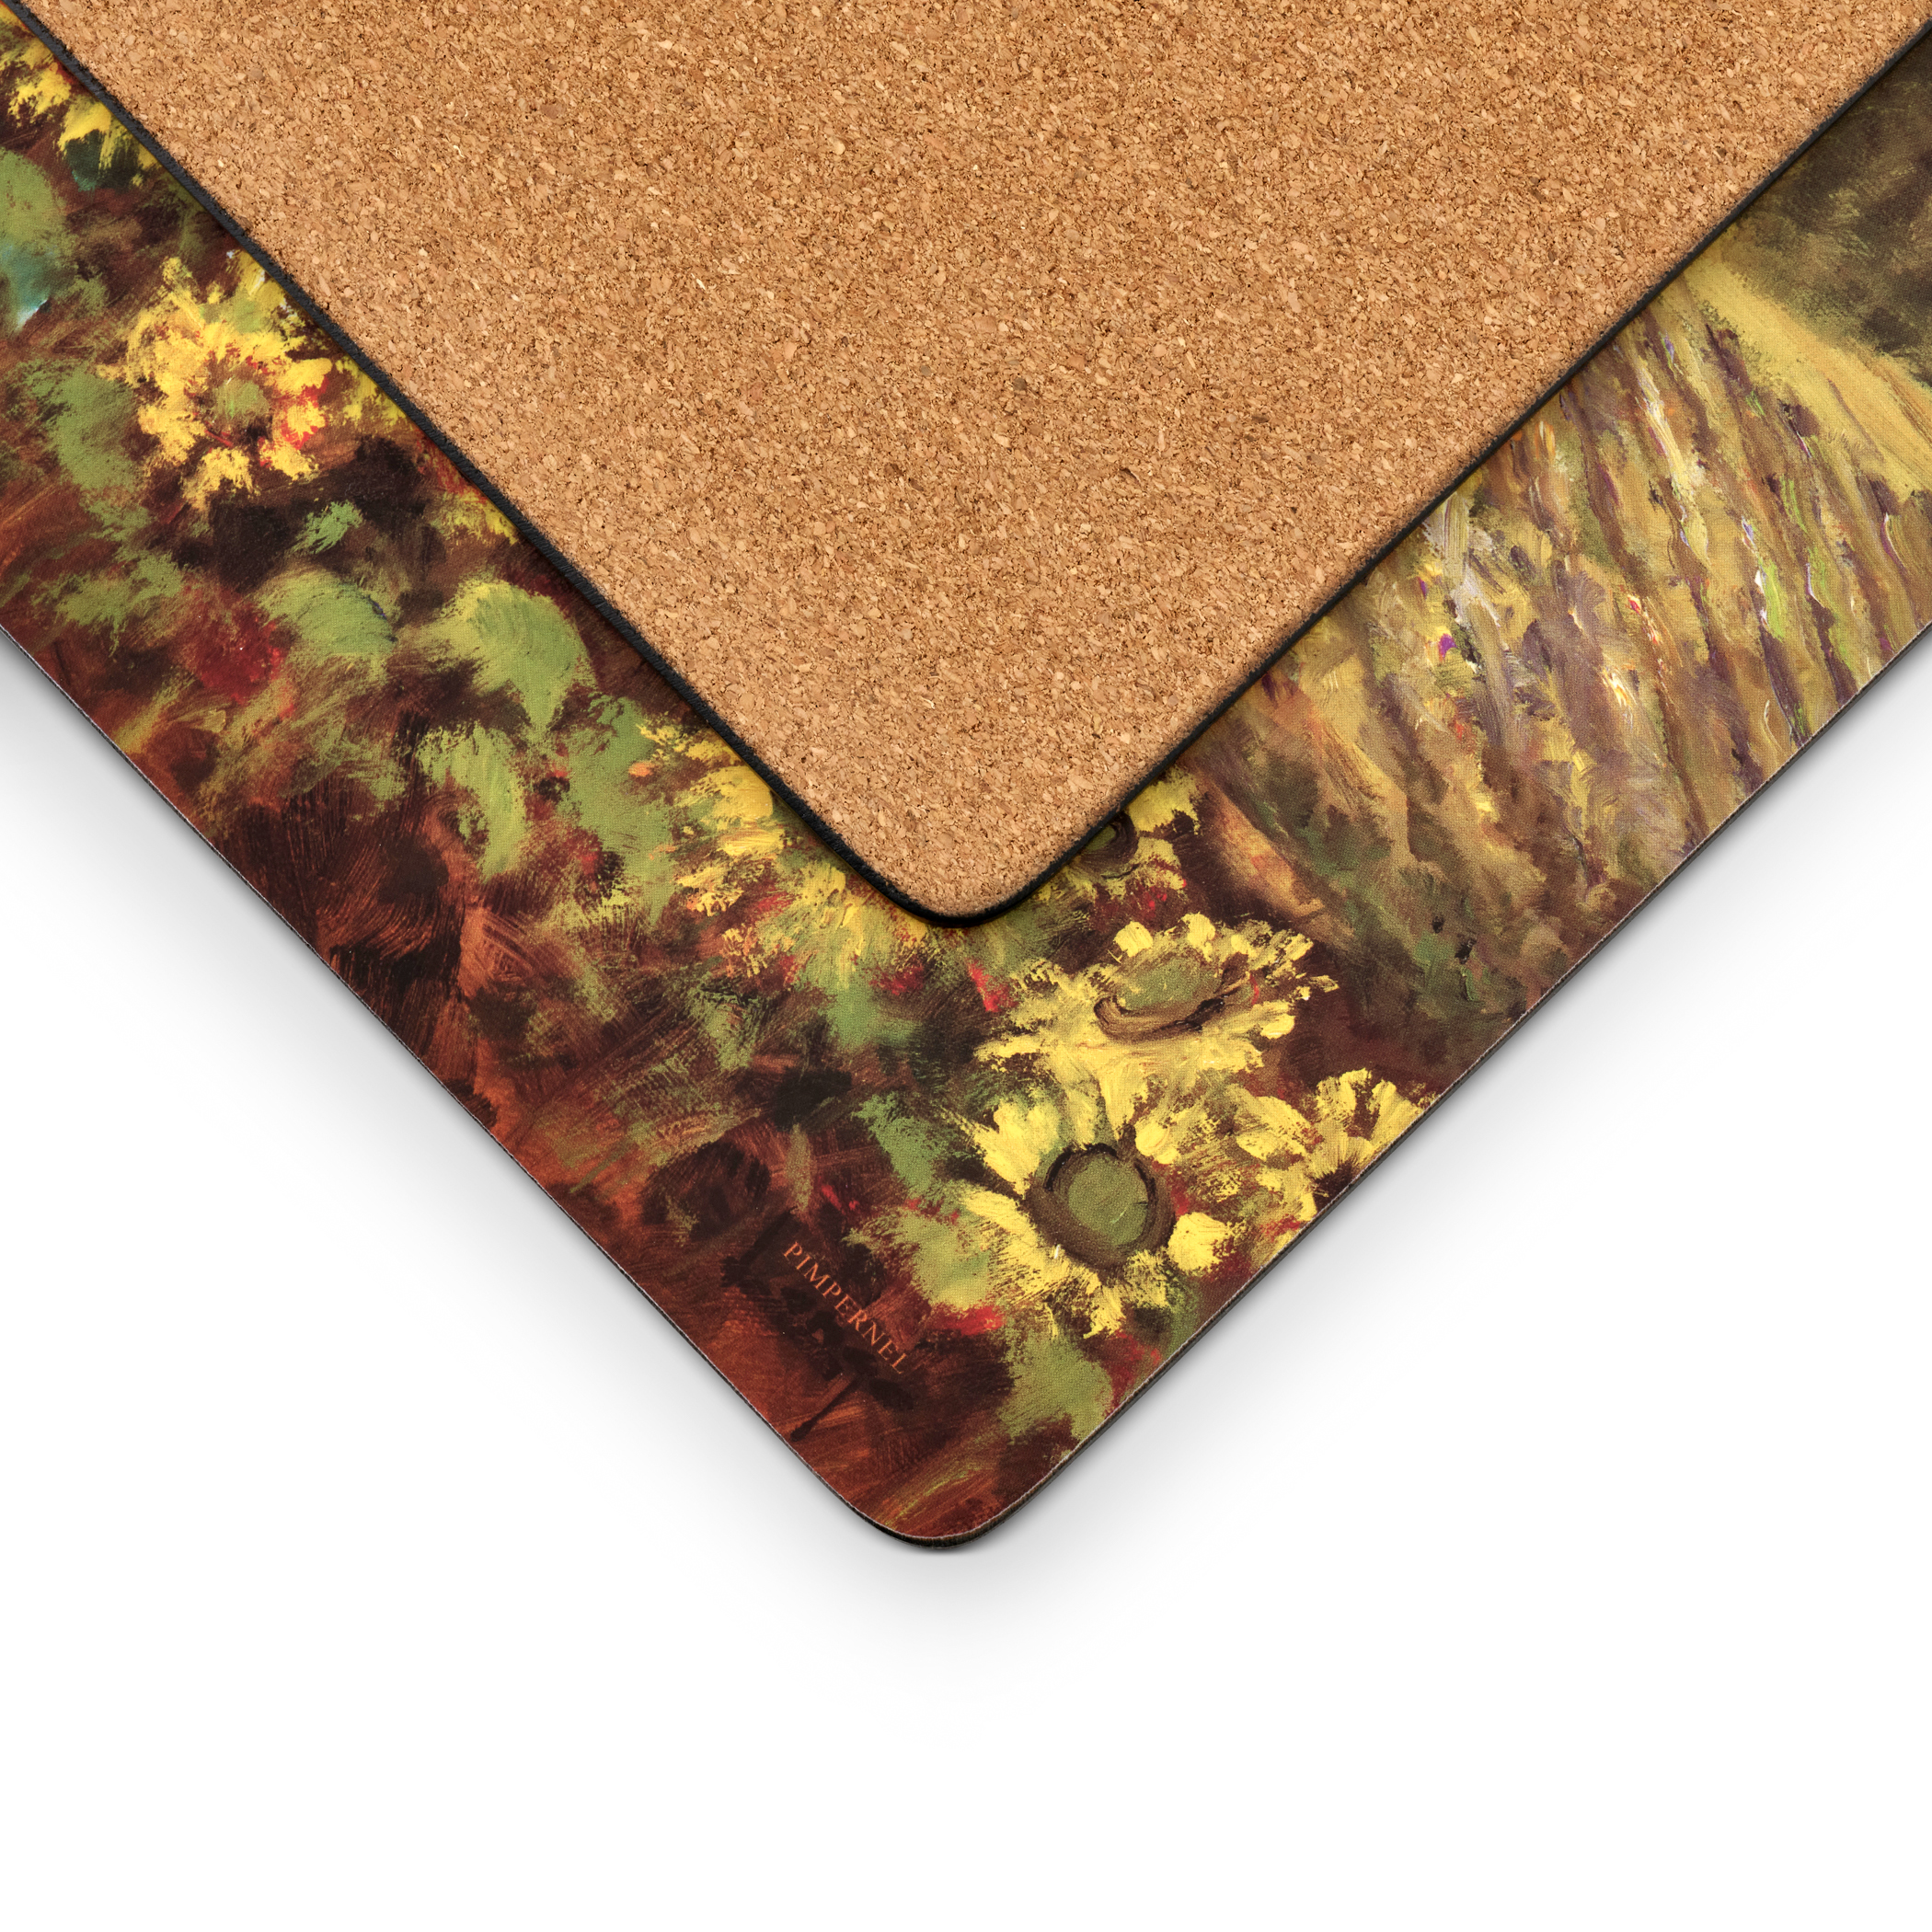 Pimpernel Tuscany Placemats Set of 4 image number 2